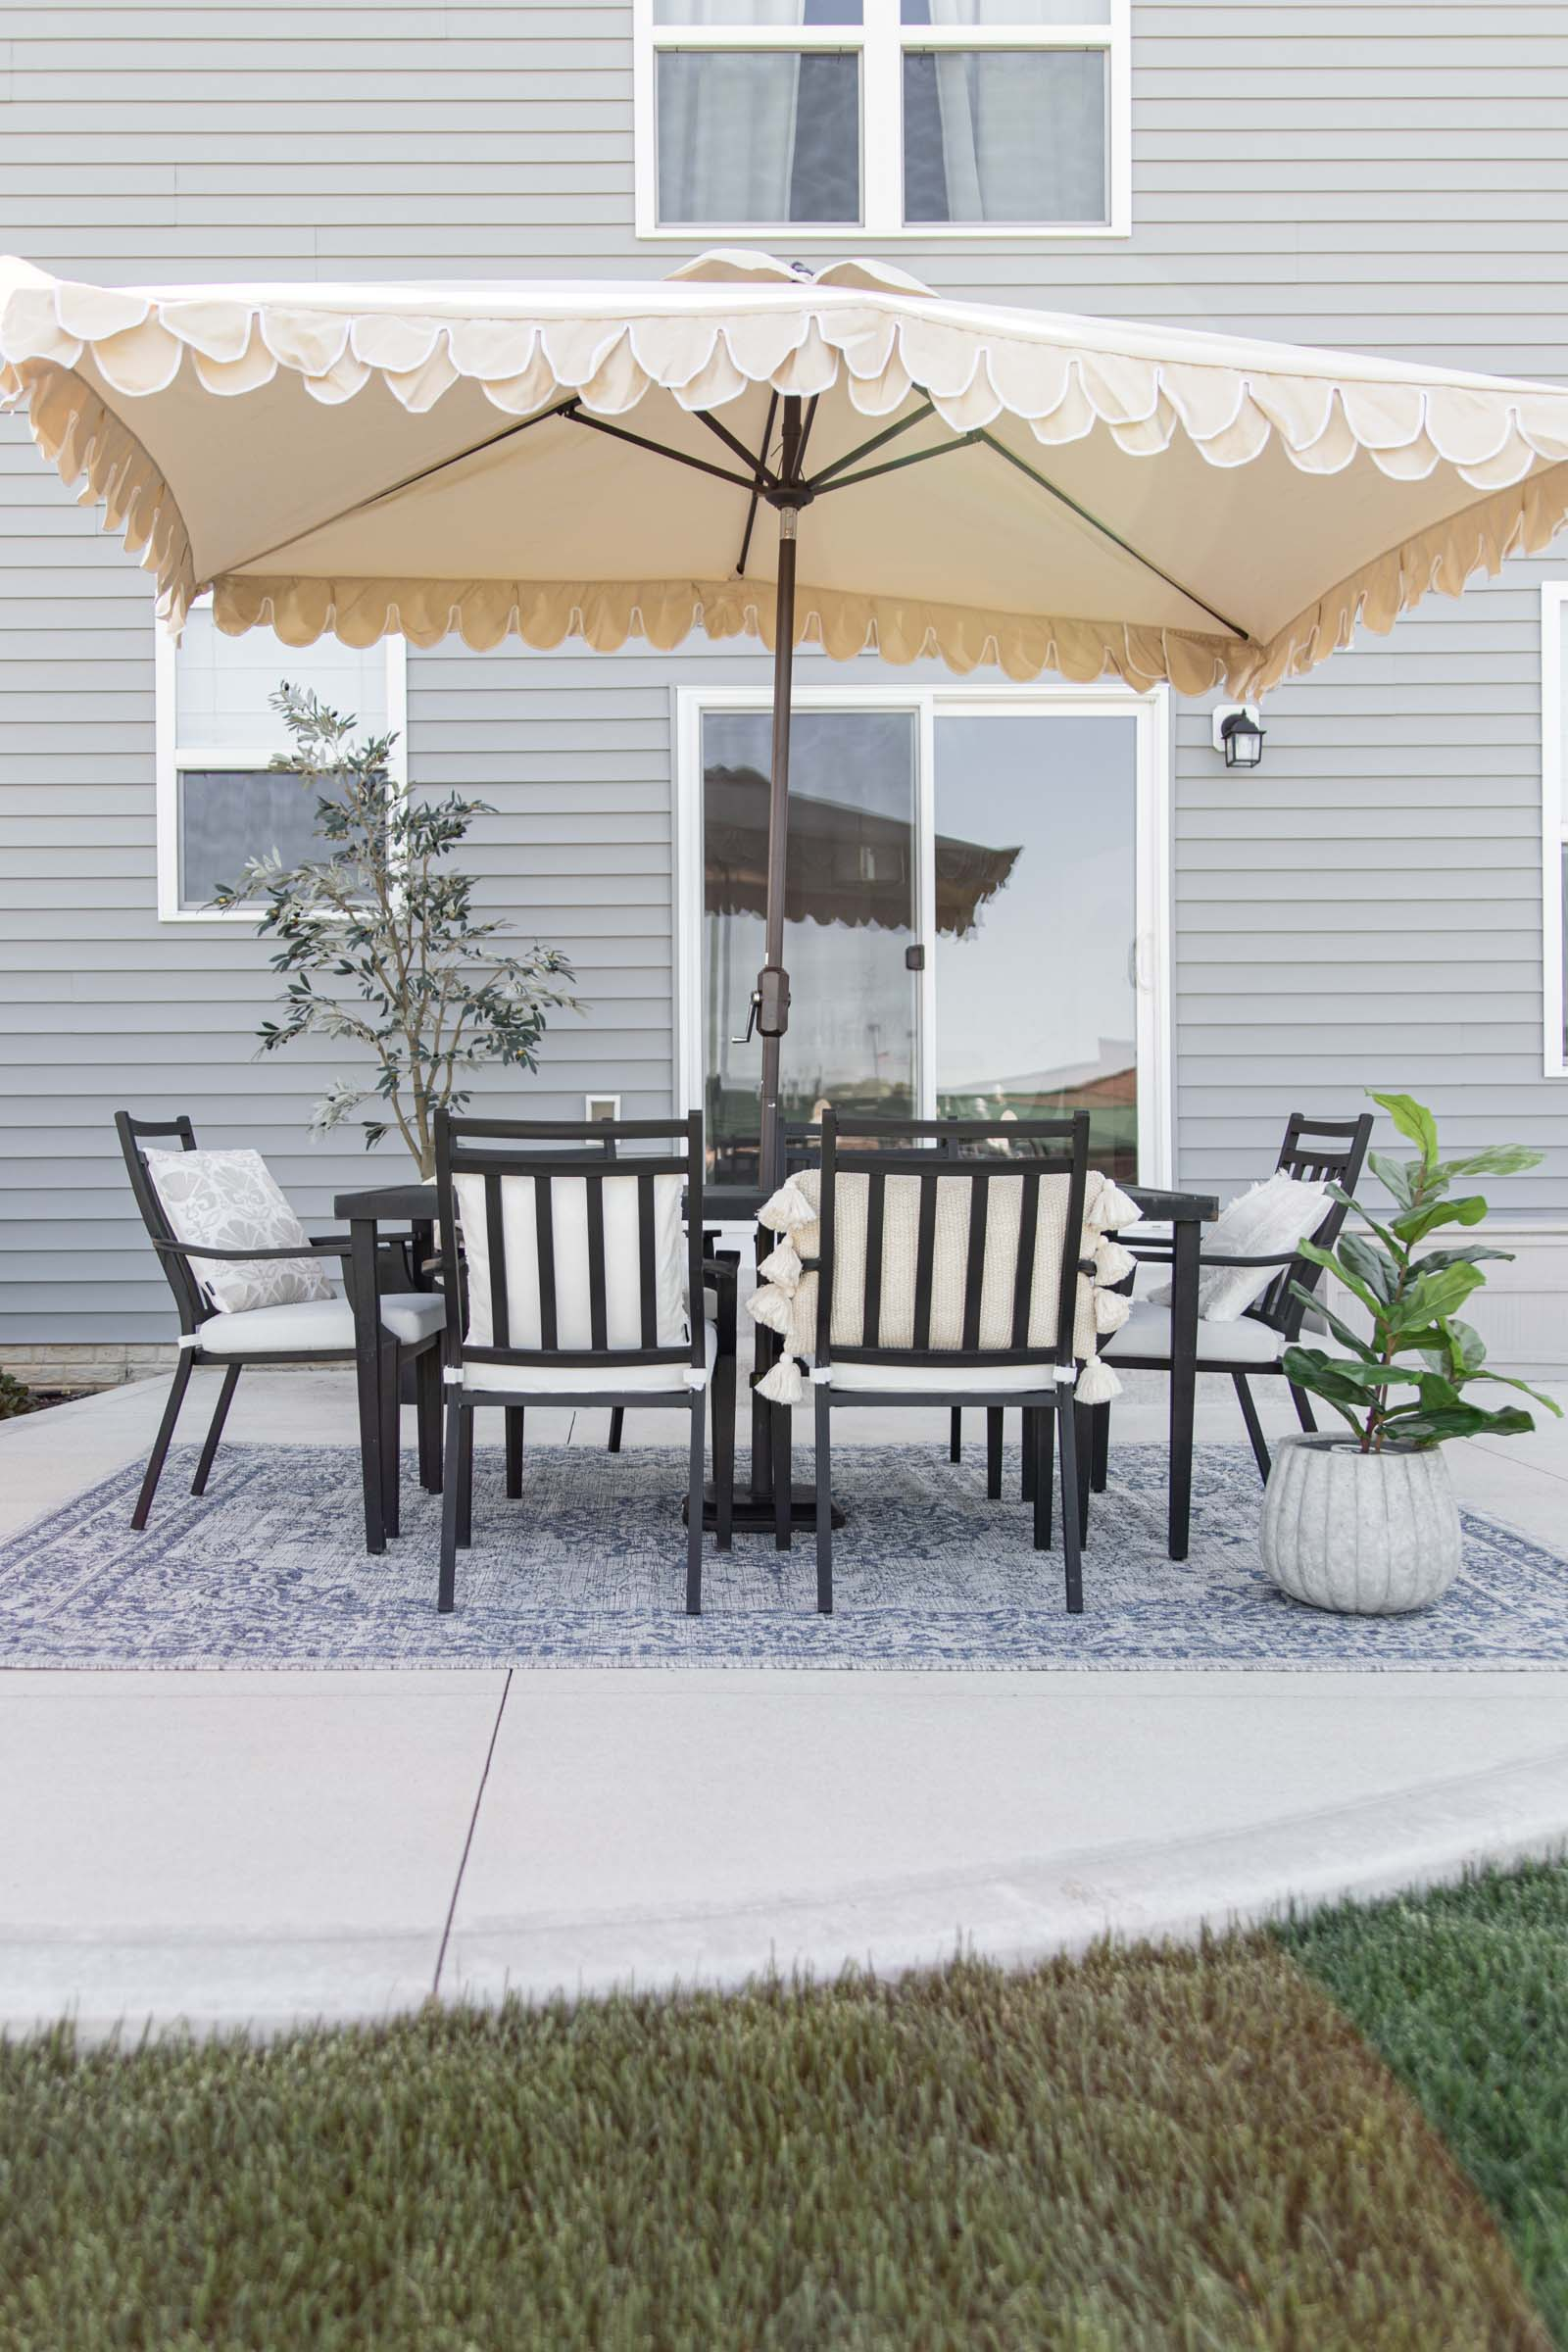 Simple Patio Decorating Ideas | beige umbrella with scalloped edge, blue outdoor rug, olive tree, pillows